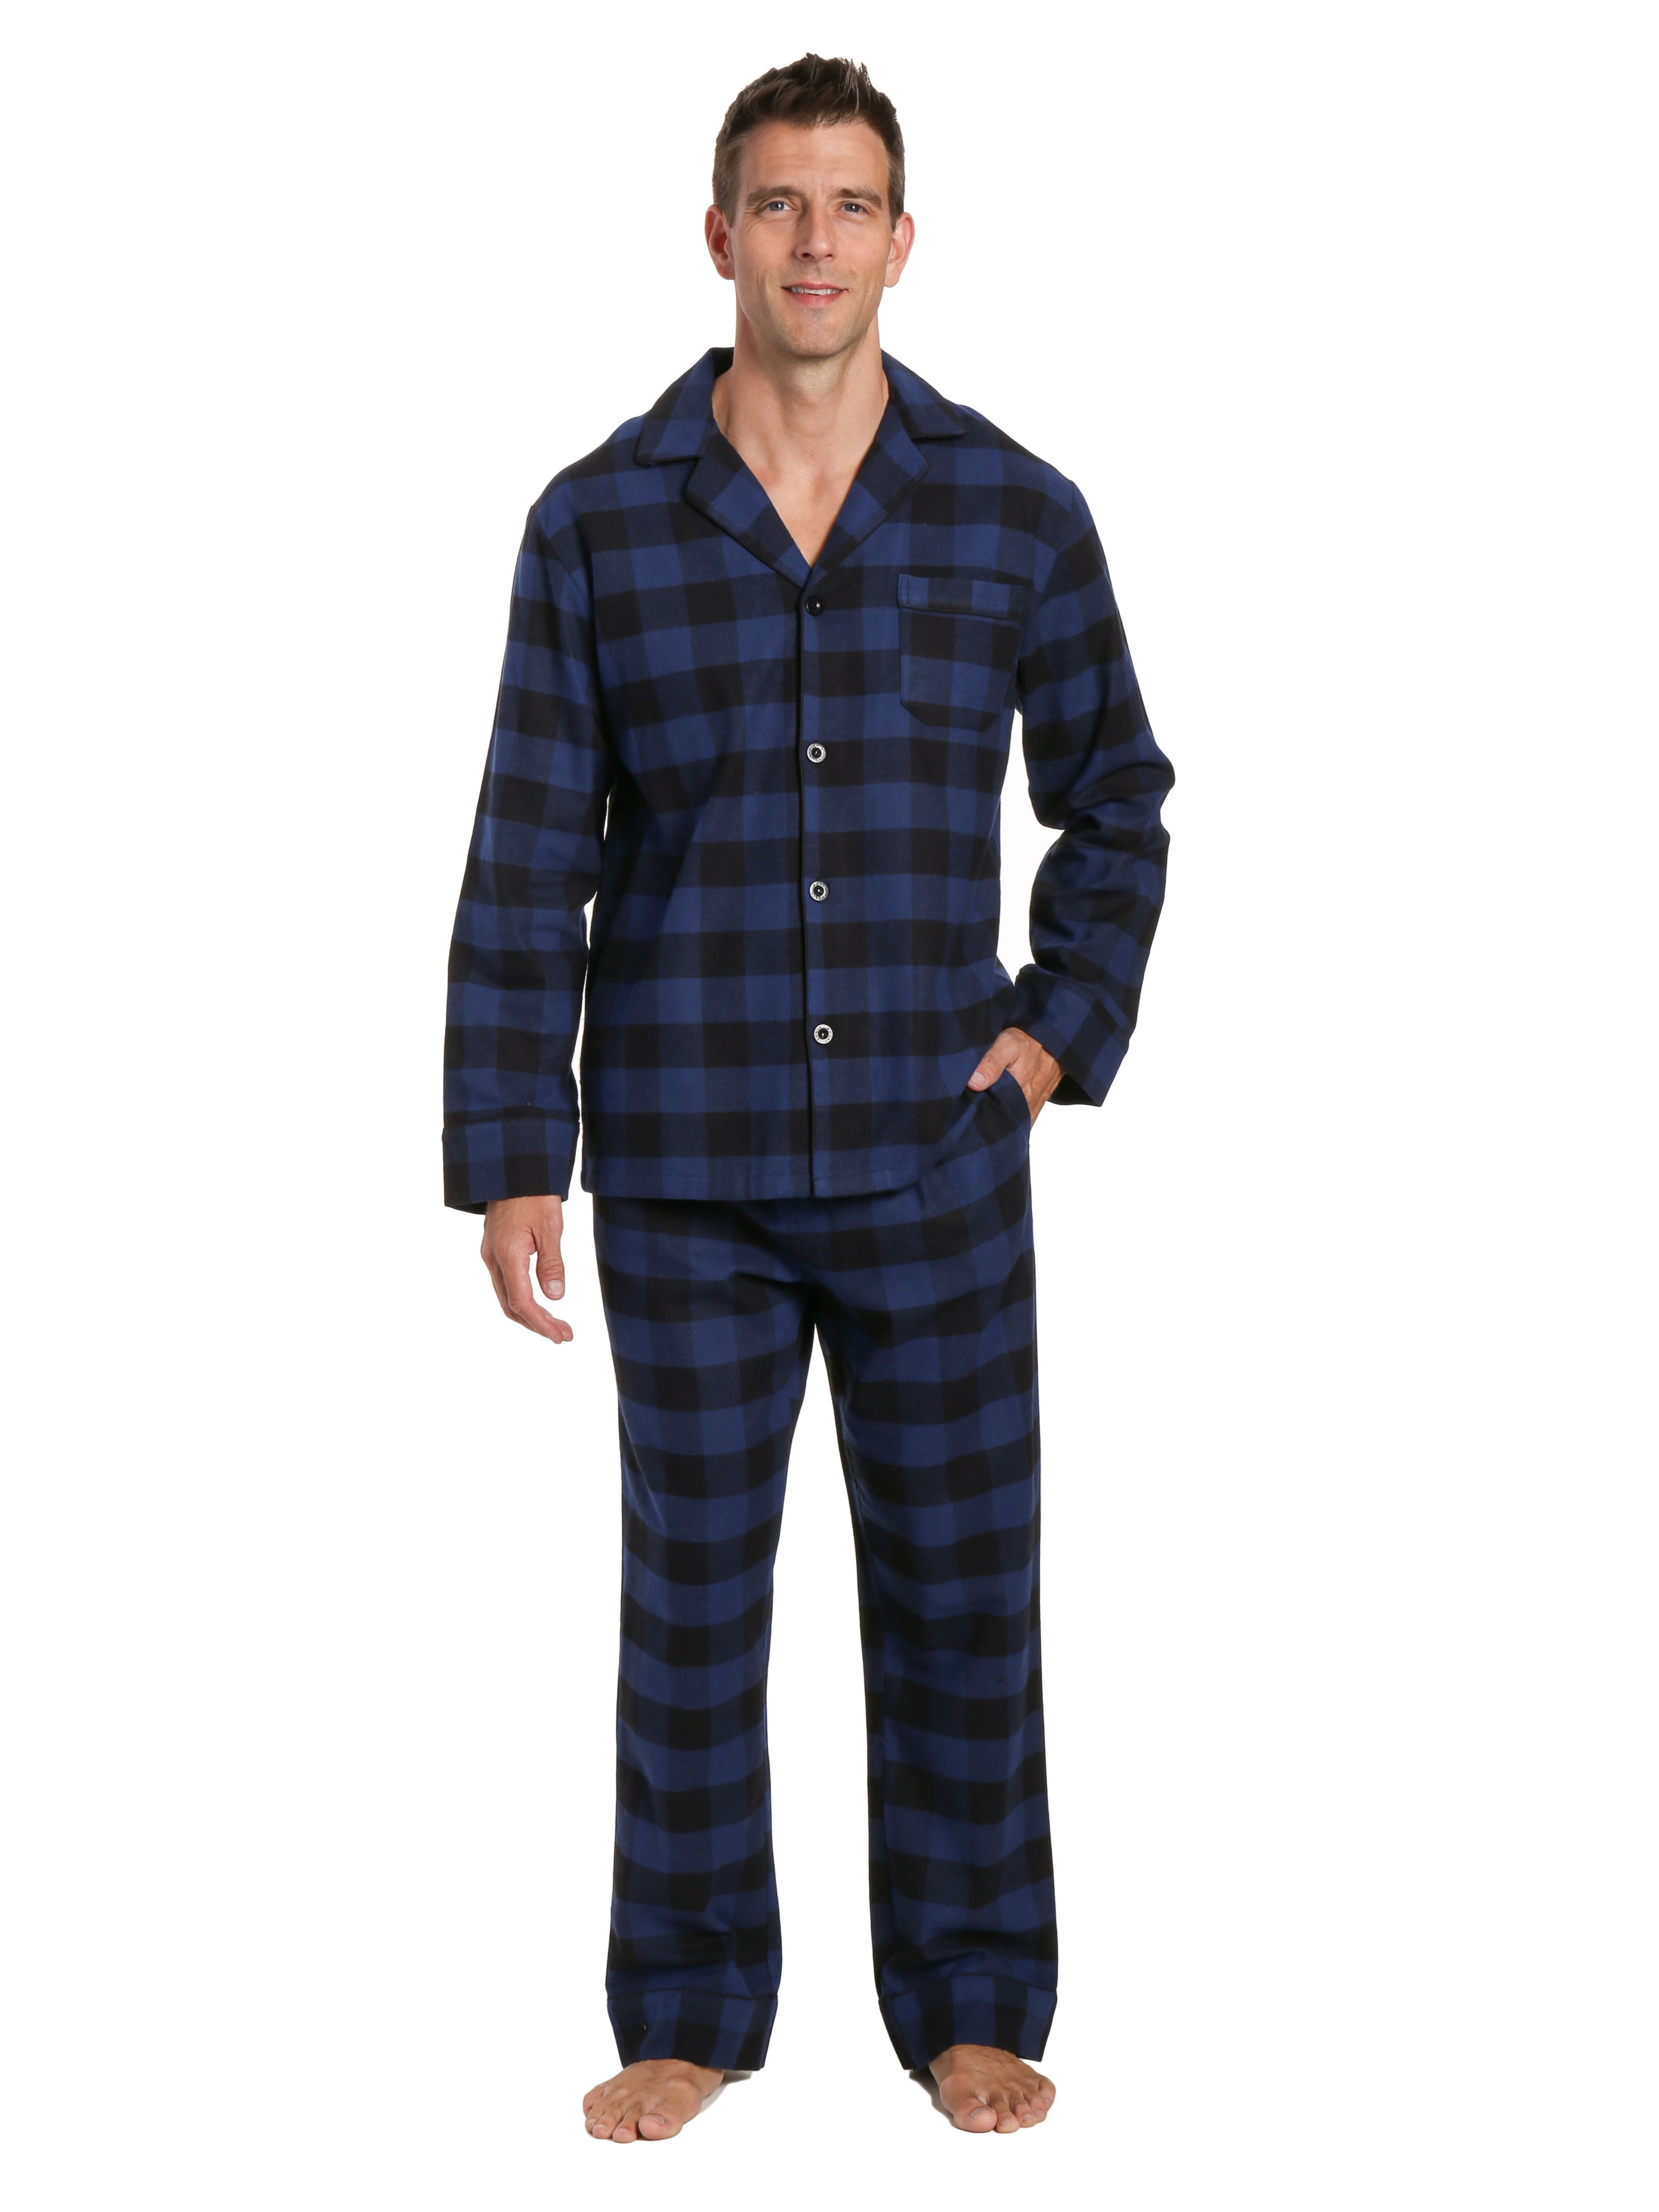 Mens 100% Cotton Flannel Pajama Set - Gingham Checks - Black-Blue